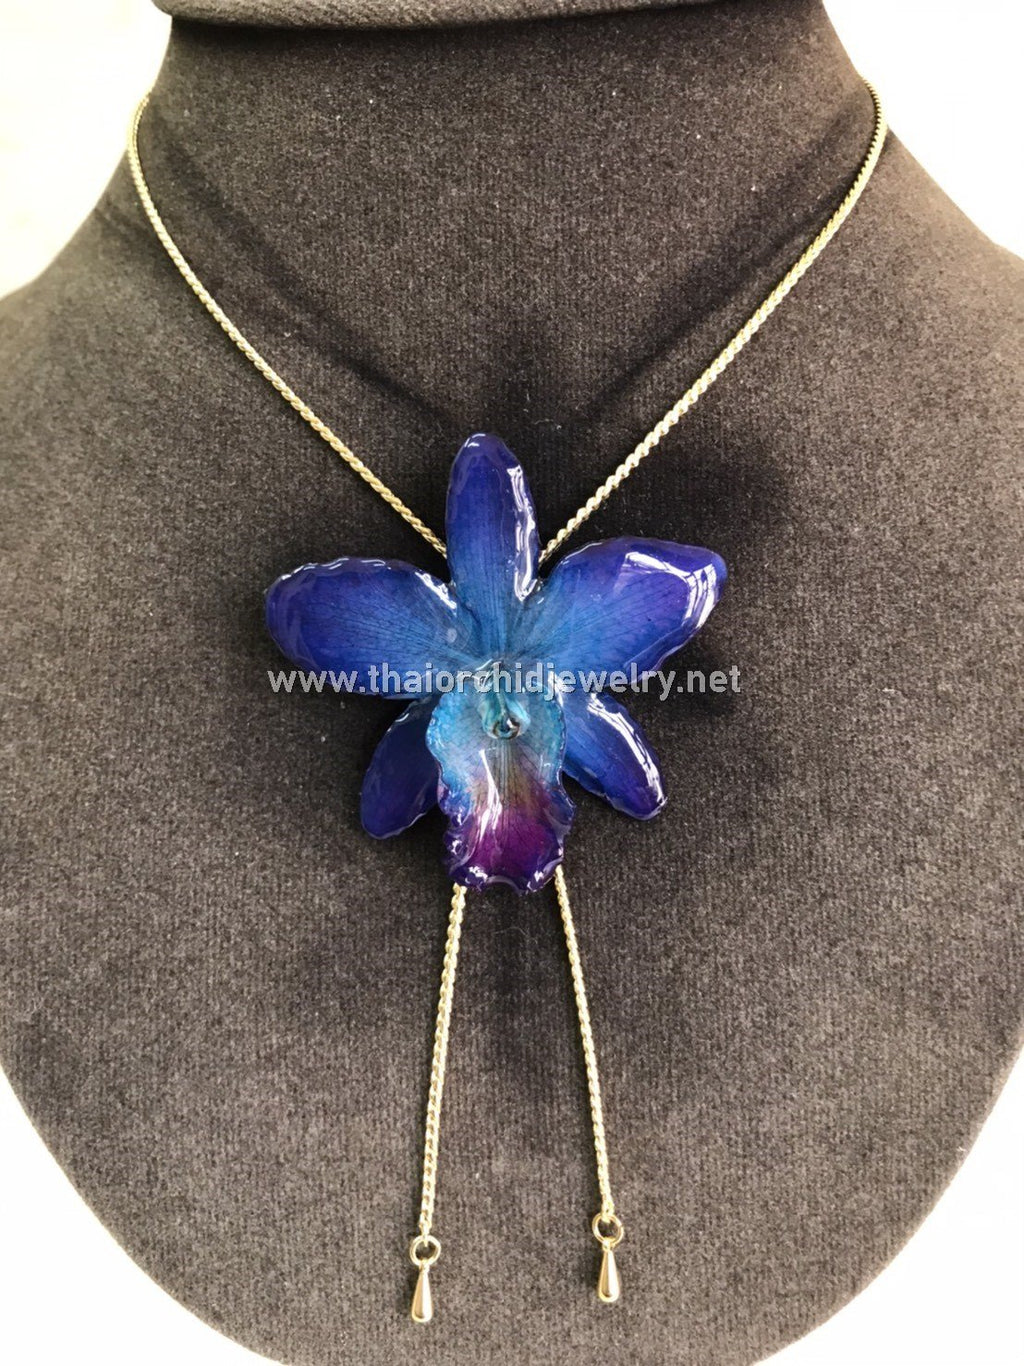 Cattleya Orchid Jewelry Slider Necklace Gold Plated 24K - NAVY